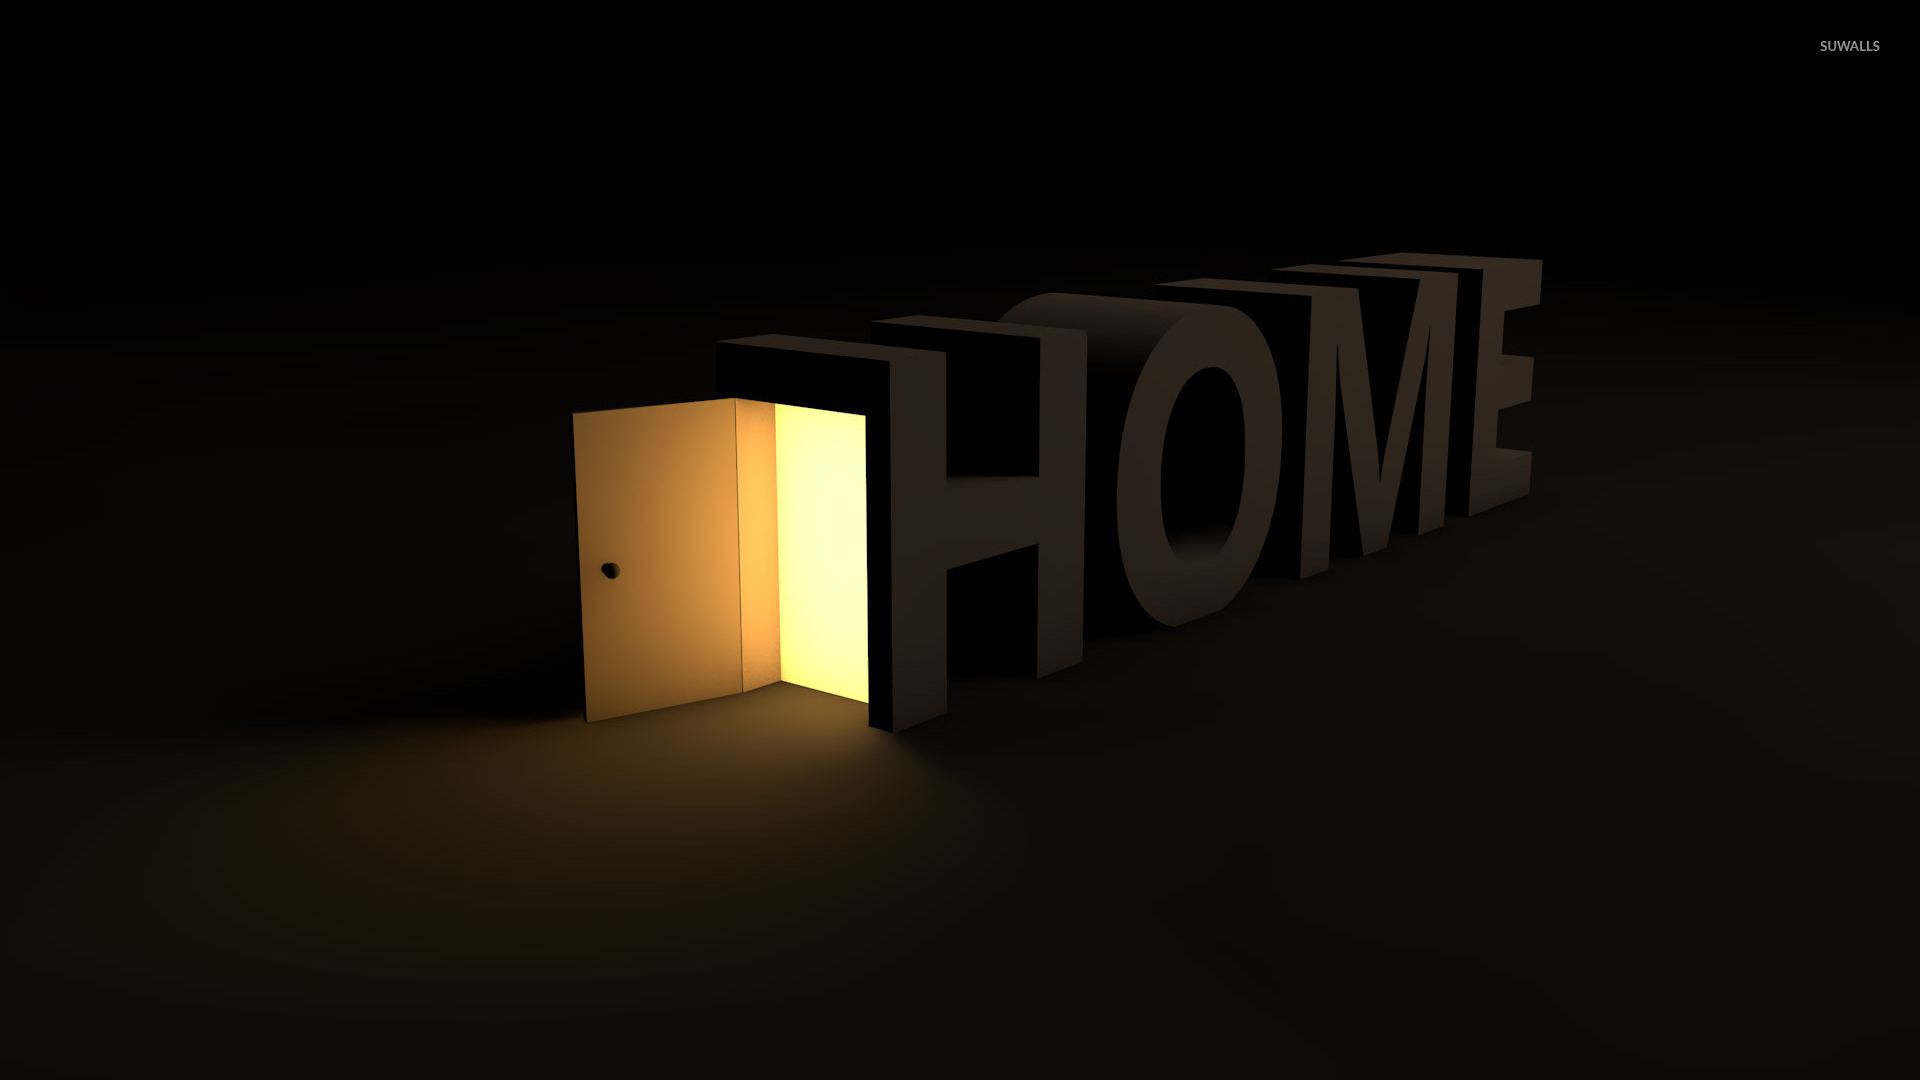 Home door wallpaper typography wallpapers 18383 for Wallpaper for home entrance